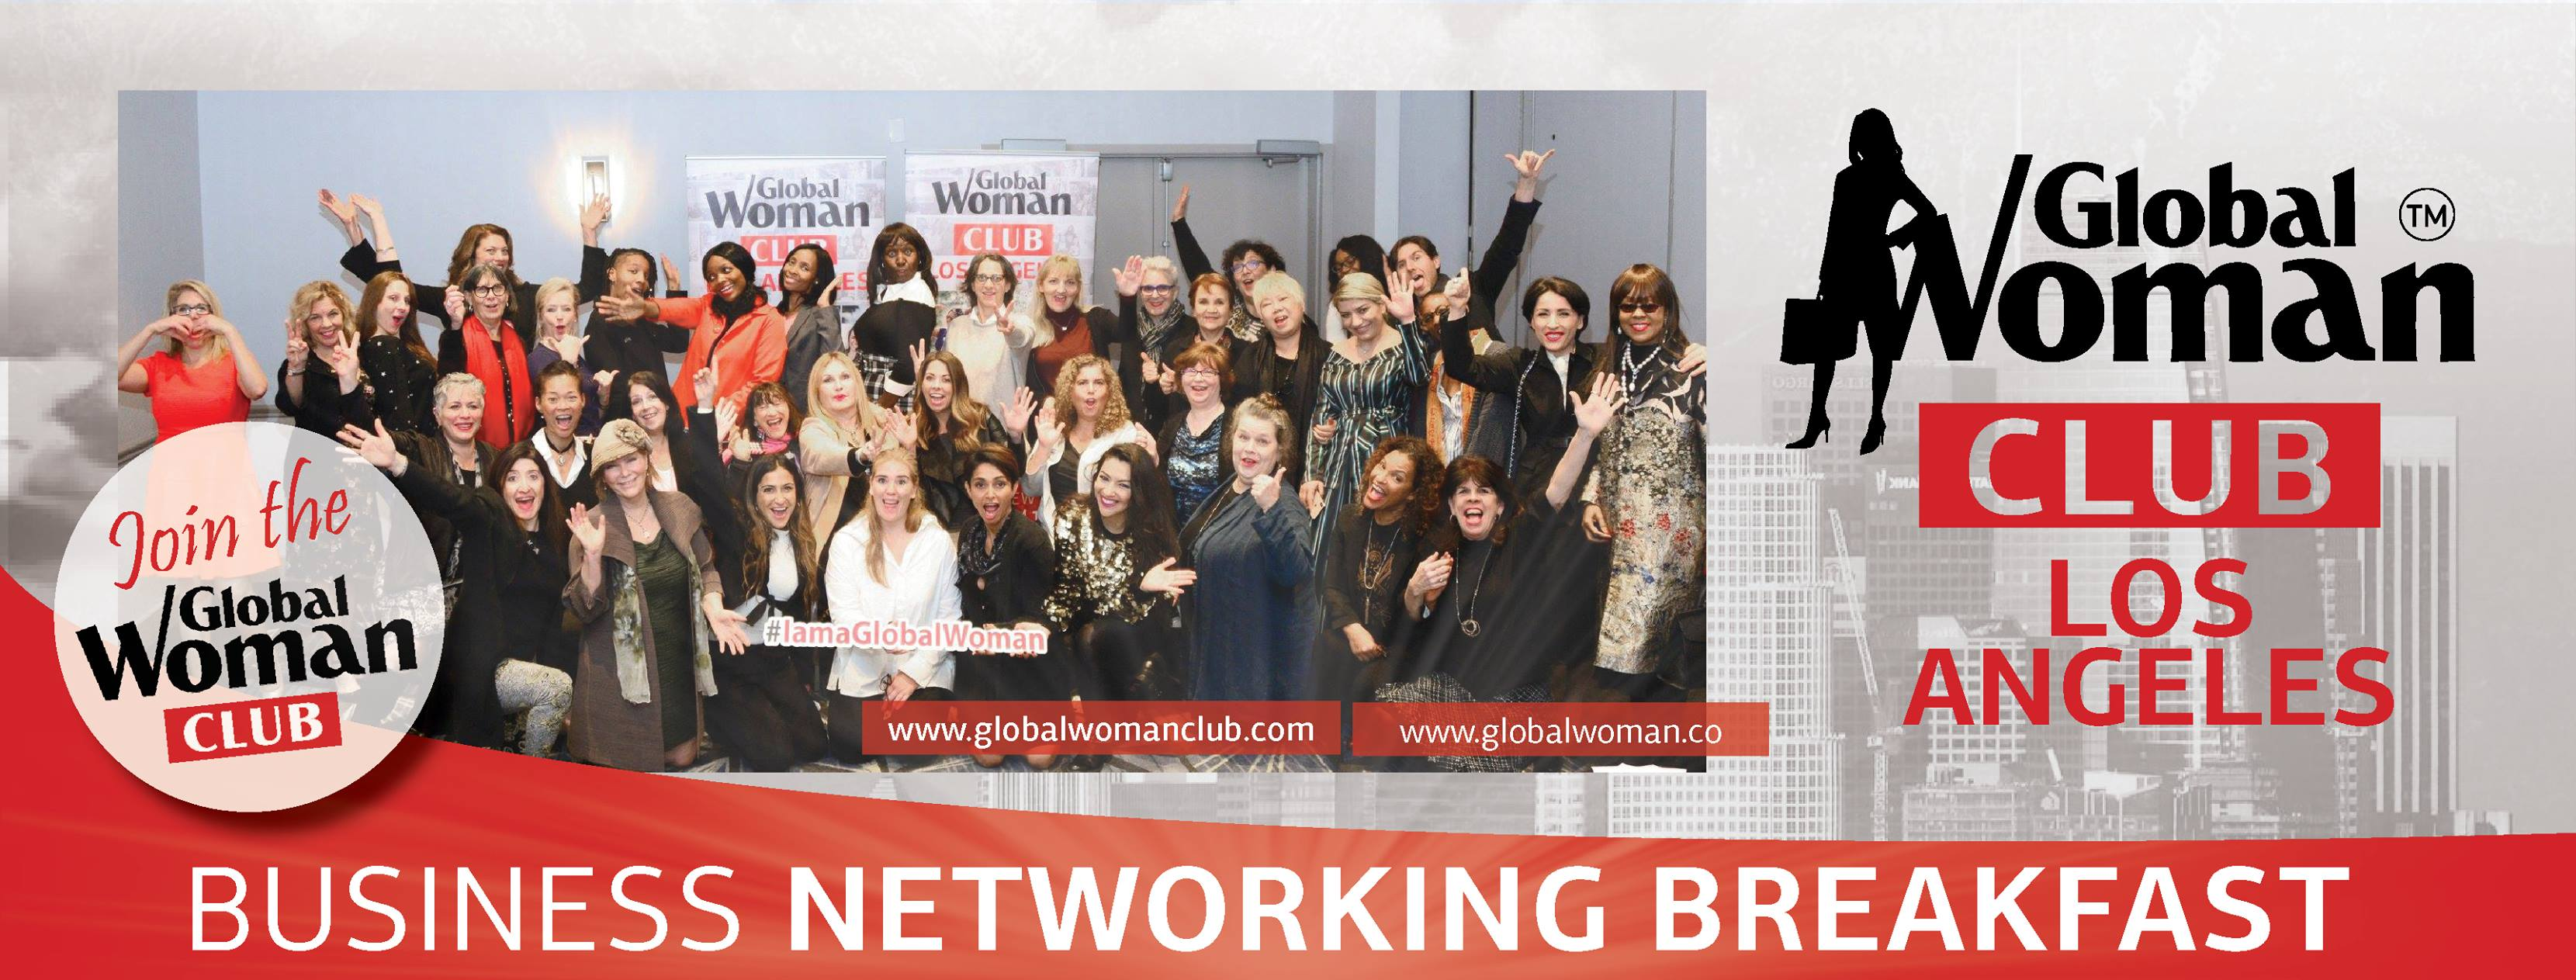 GLOBAL WOMAN CLUB Los Angeles : BUSINESS NETWORKING MEETING - January Cover Image